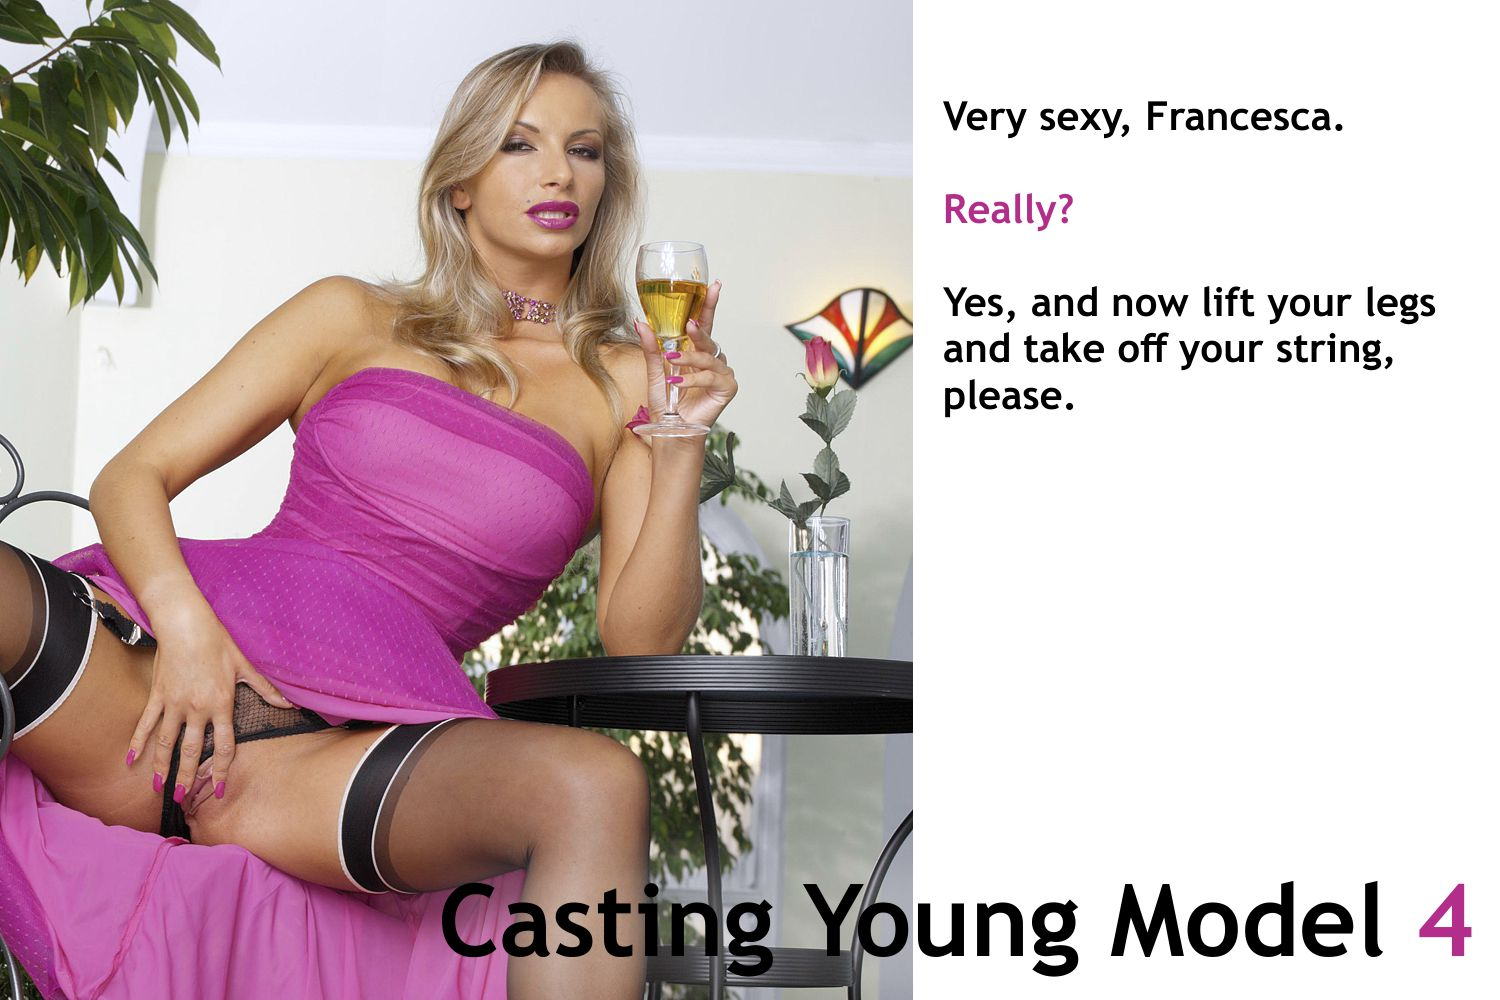 casting_young_model_4_004